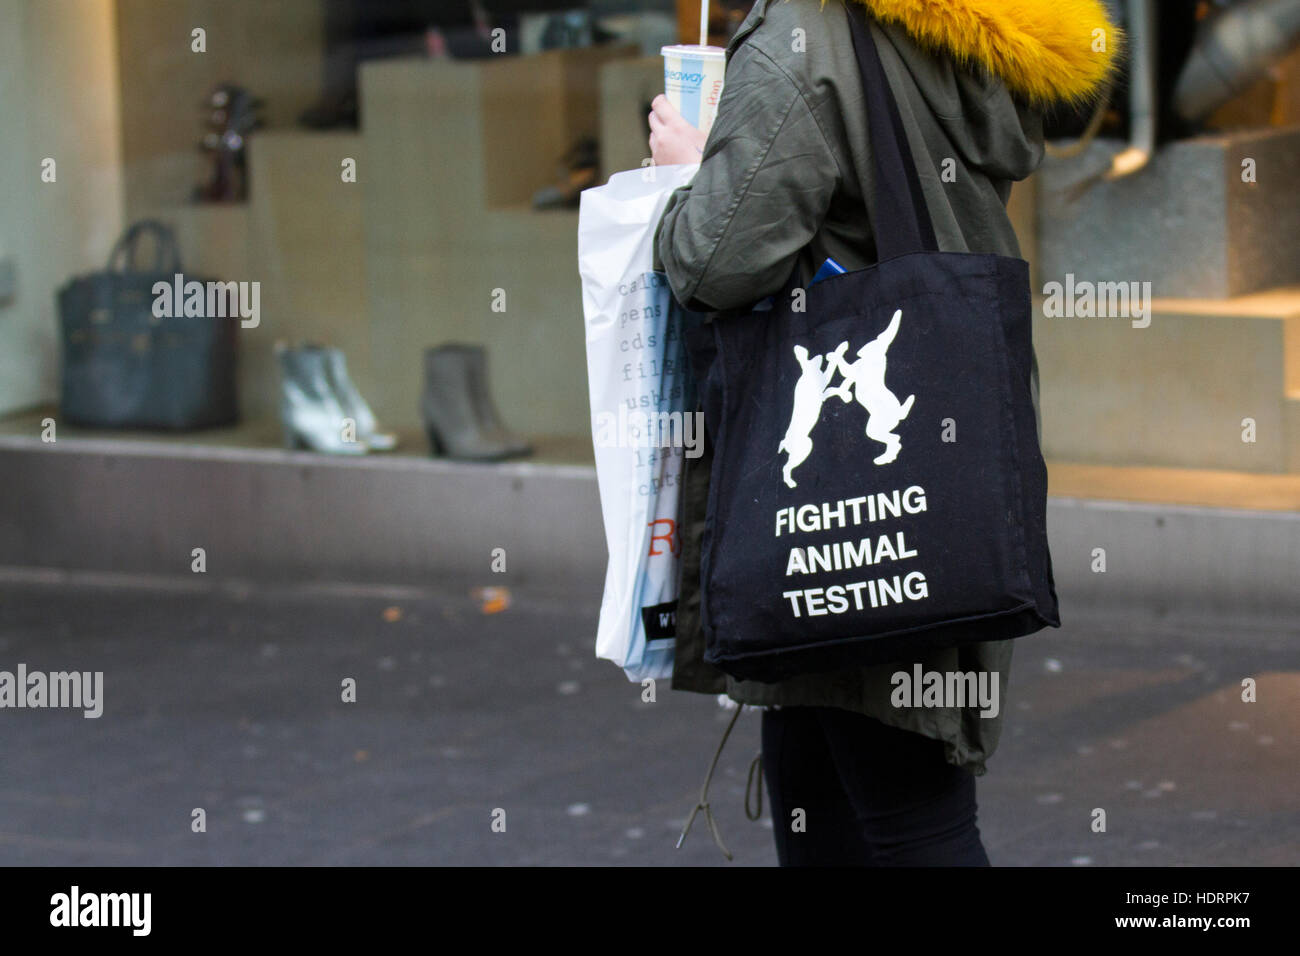 Southport, Merseyside, UK. 24th November, 2018. Vegan Woman in town centre against science, medicine, animal welfare, - Stock Image